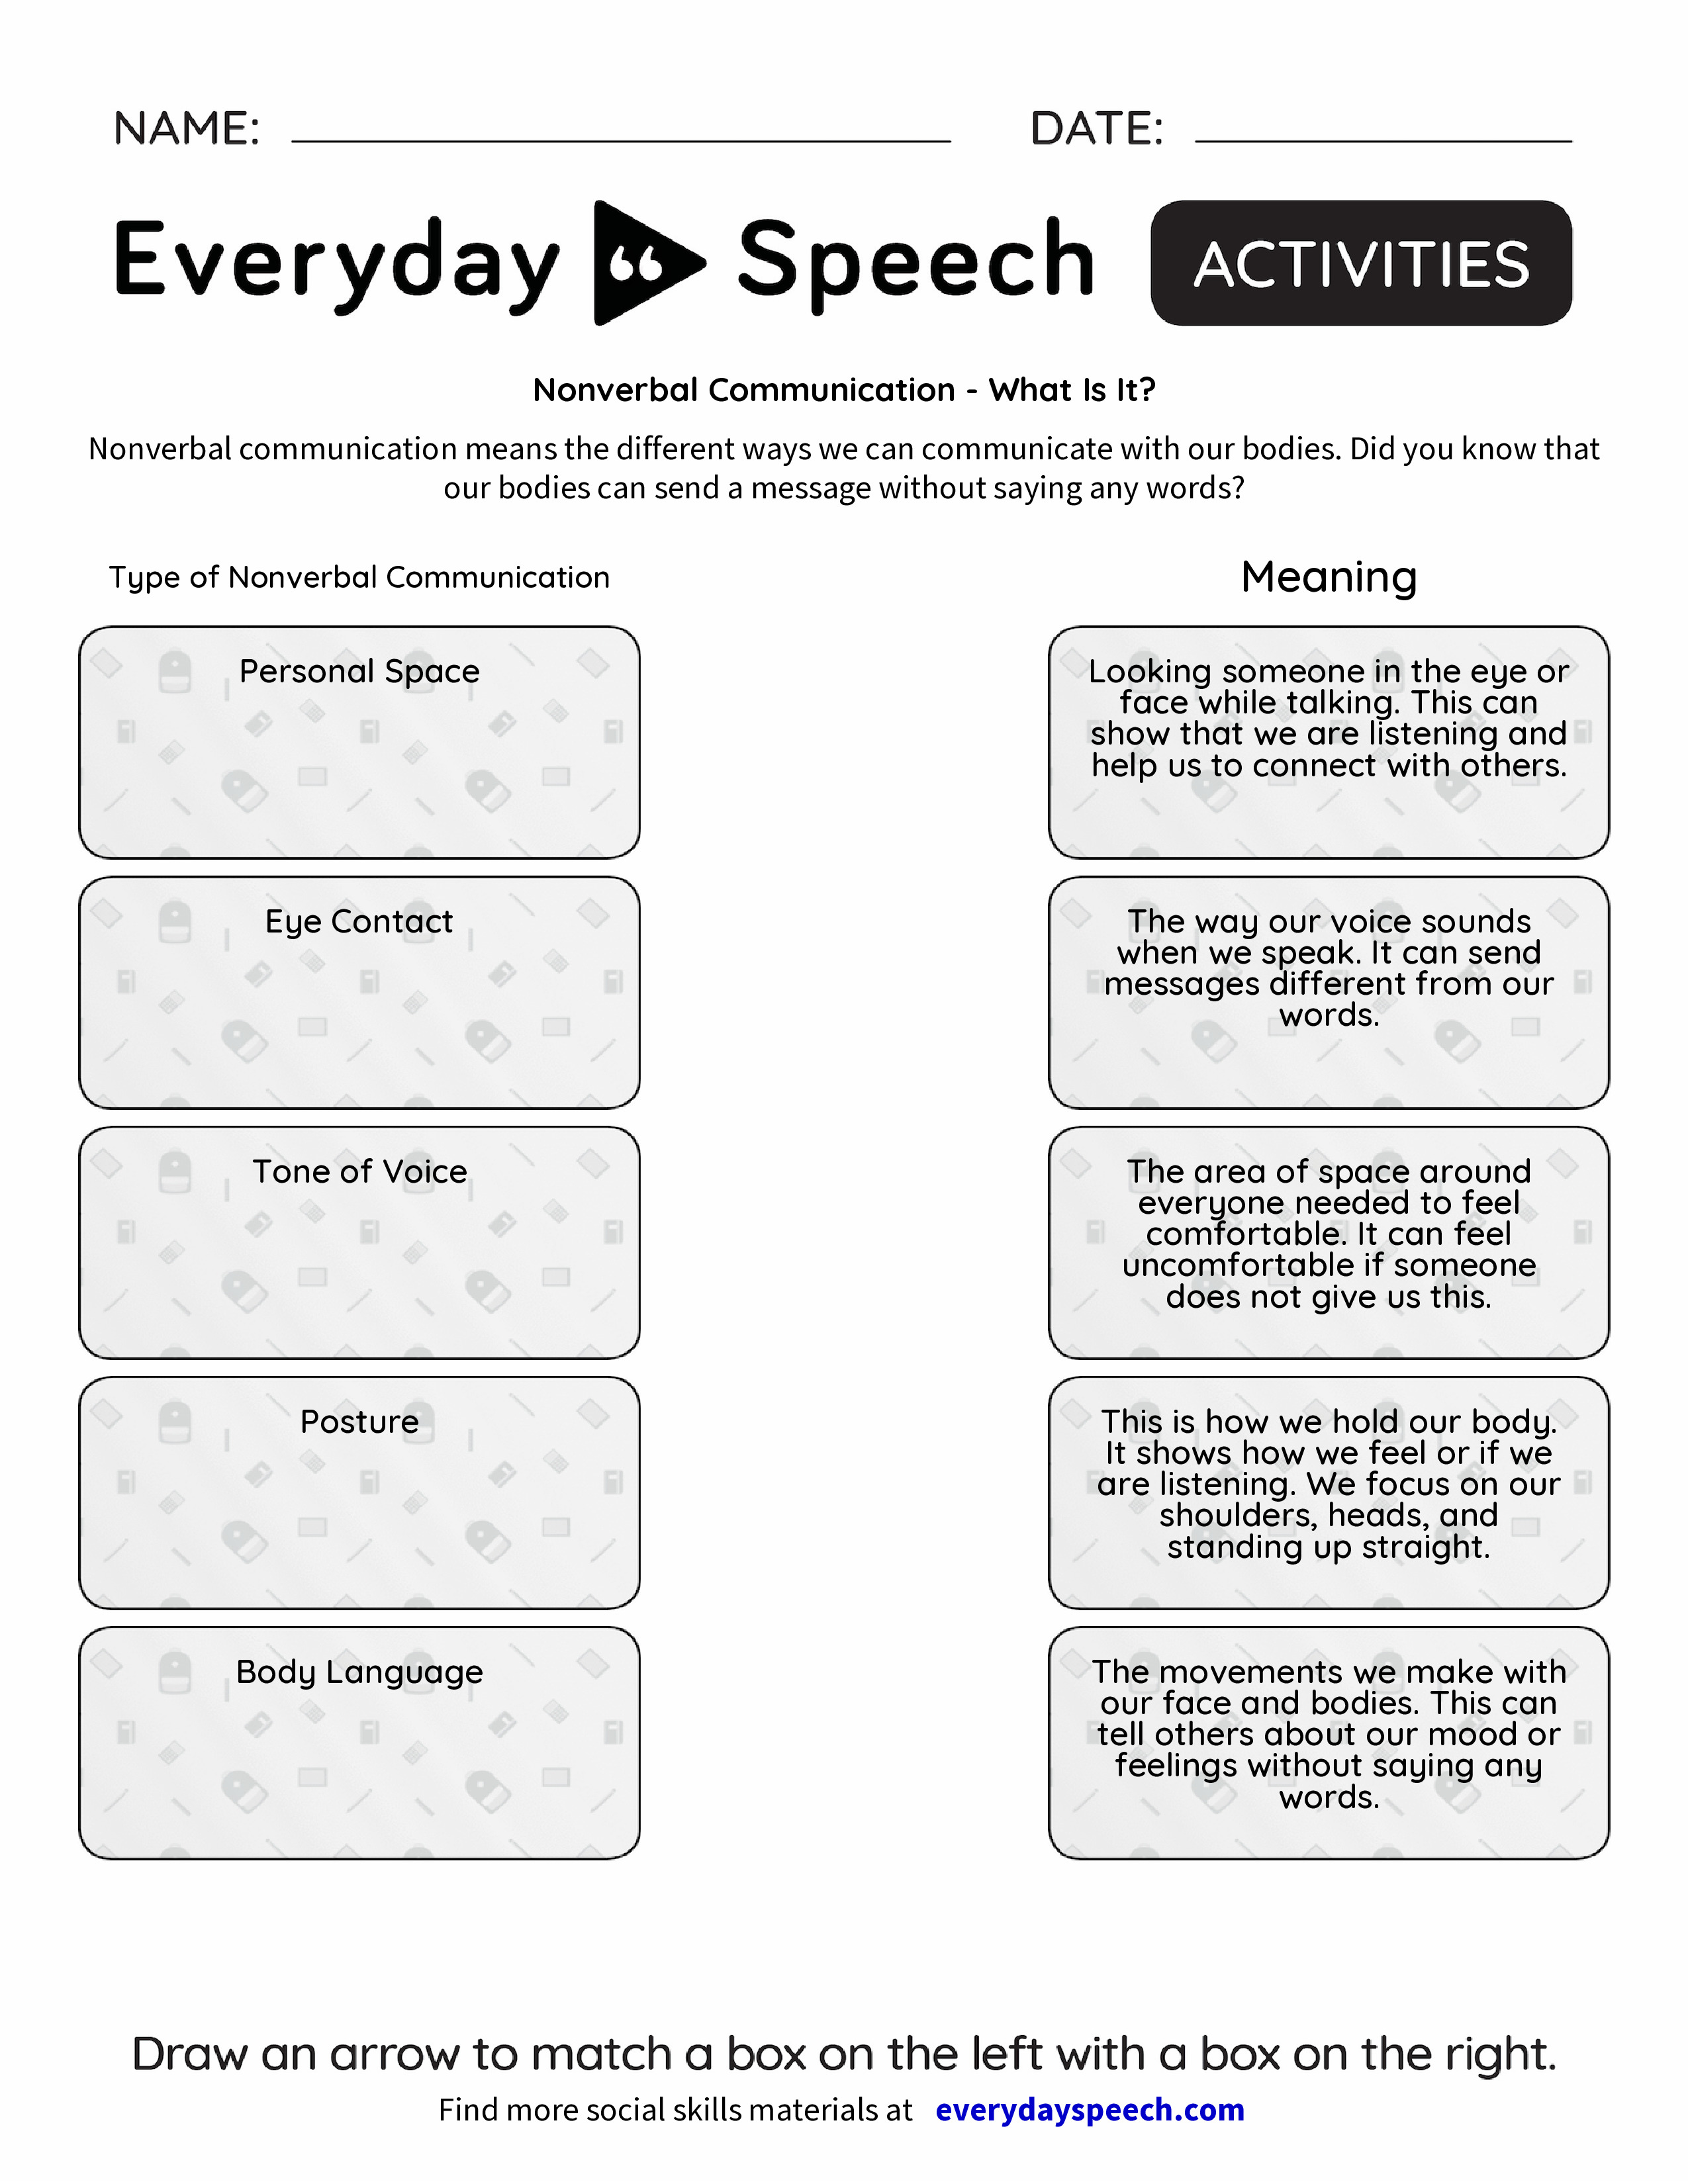 Nonverbal Communication What Is It Everyday Speech Everyday Speech